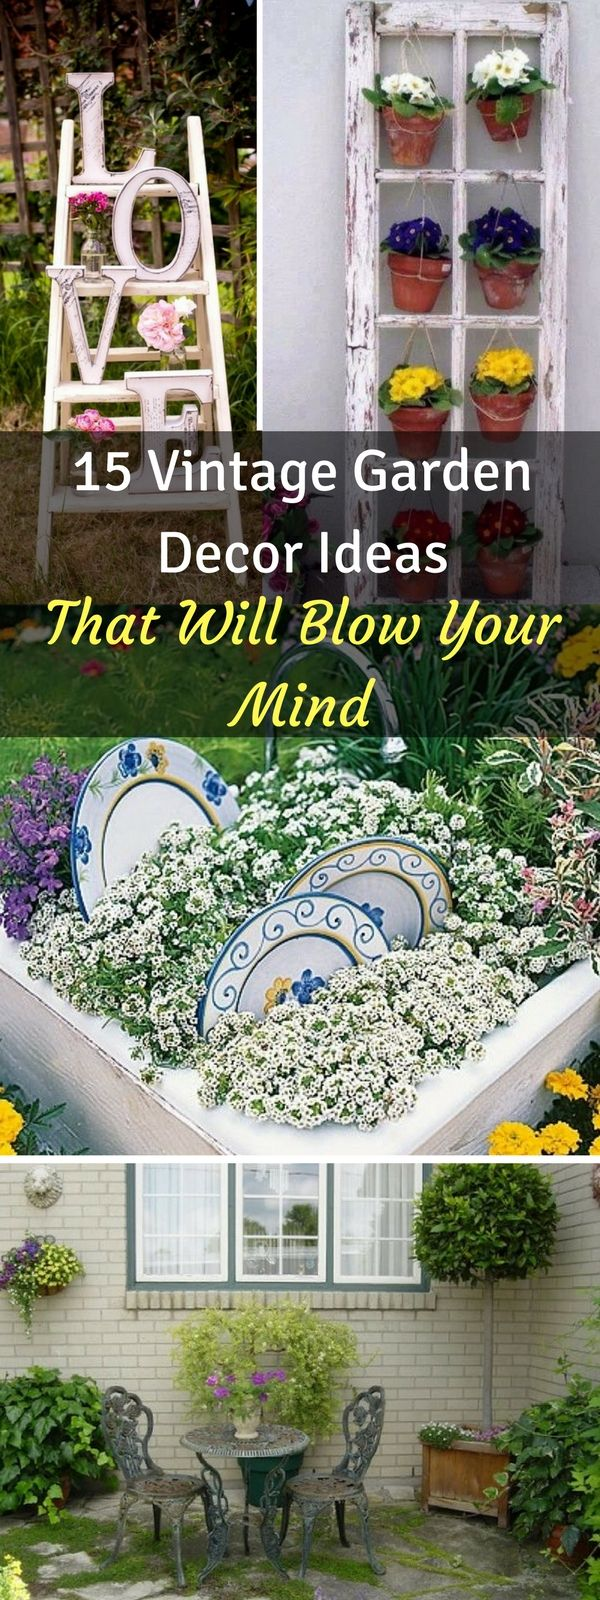 15 Vintage Garden Decor Ideas That Will Blow Your Mind | Beautiful ...